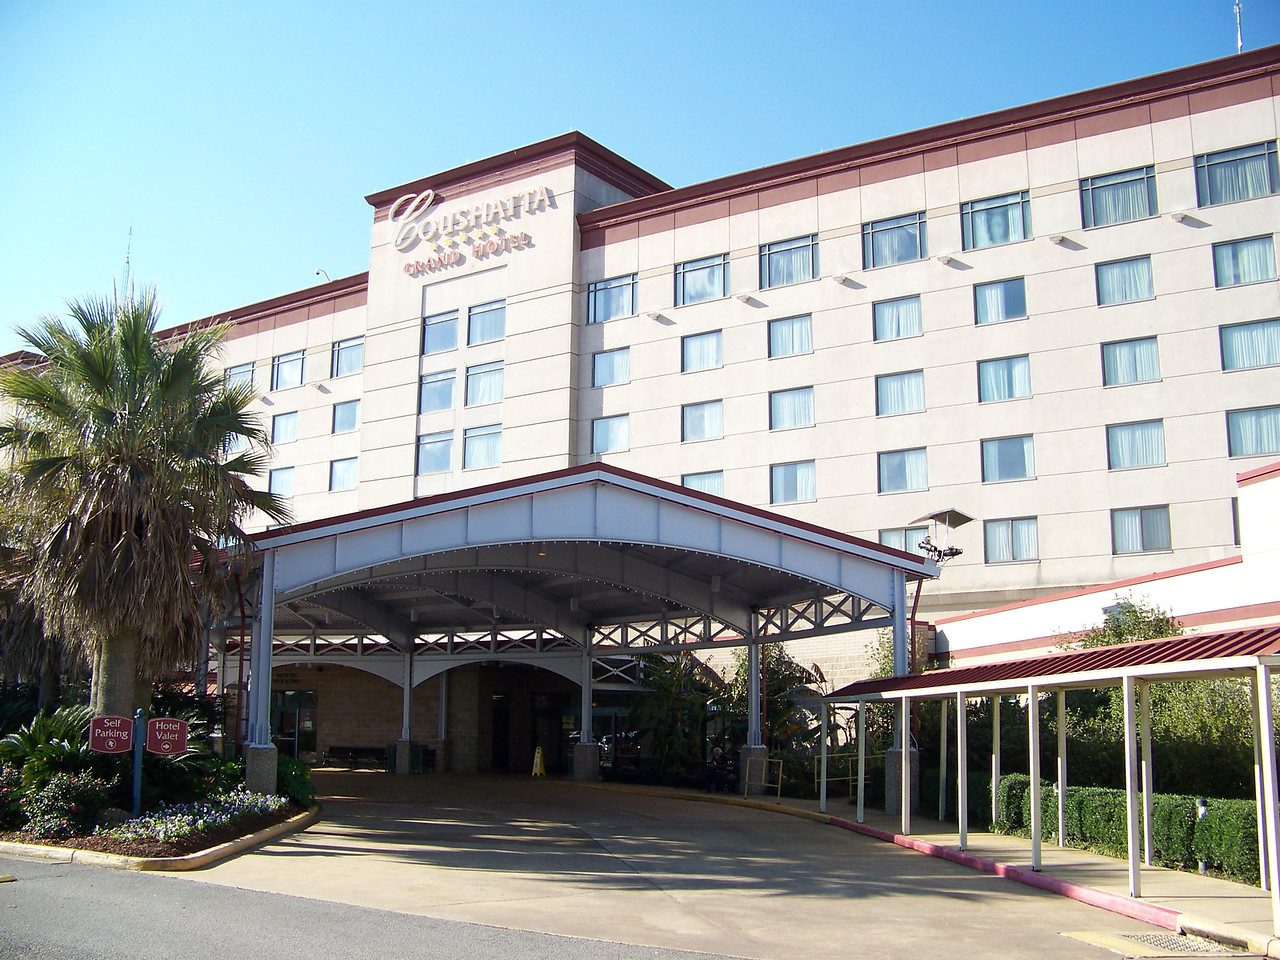 We stayed at the Grand Hotel, one of two hotels at the Coushatta Casino Resort.